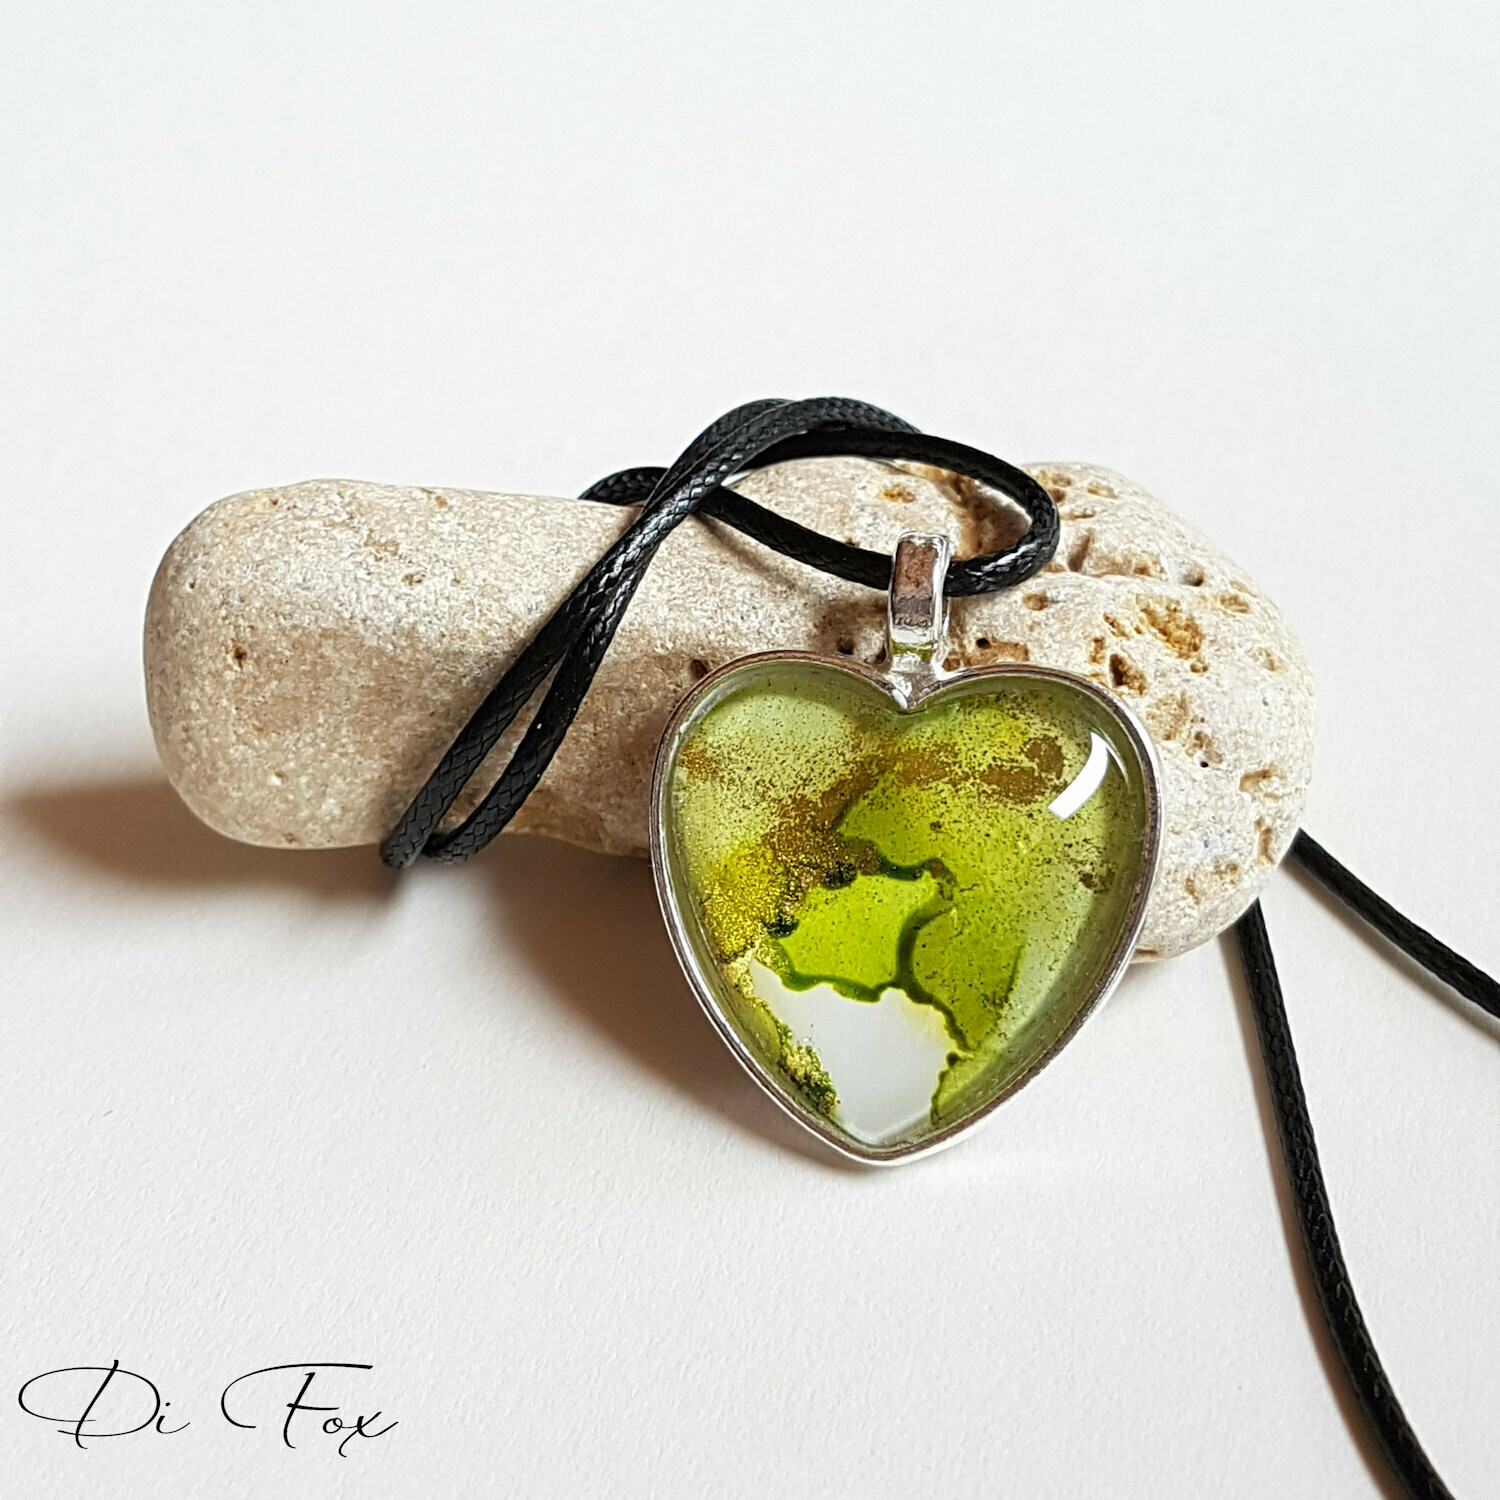 Olive Green, Gold and White Heart shape pendant necklace